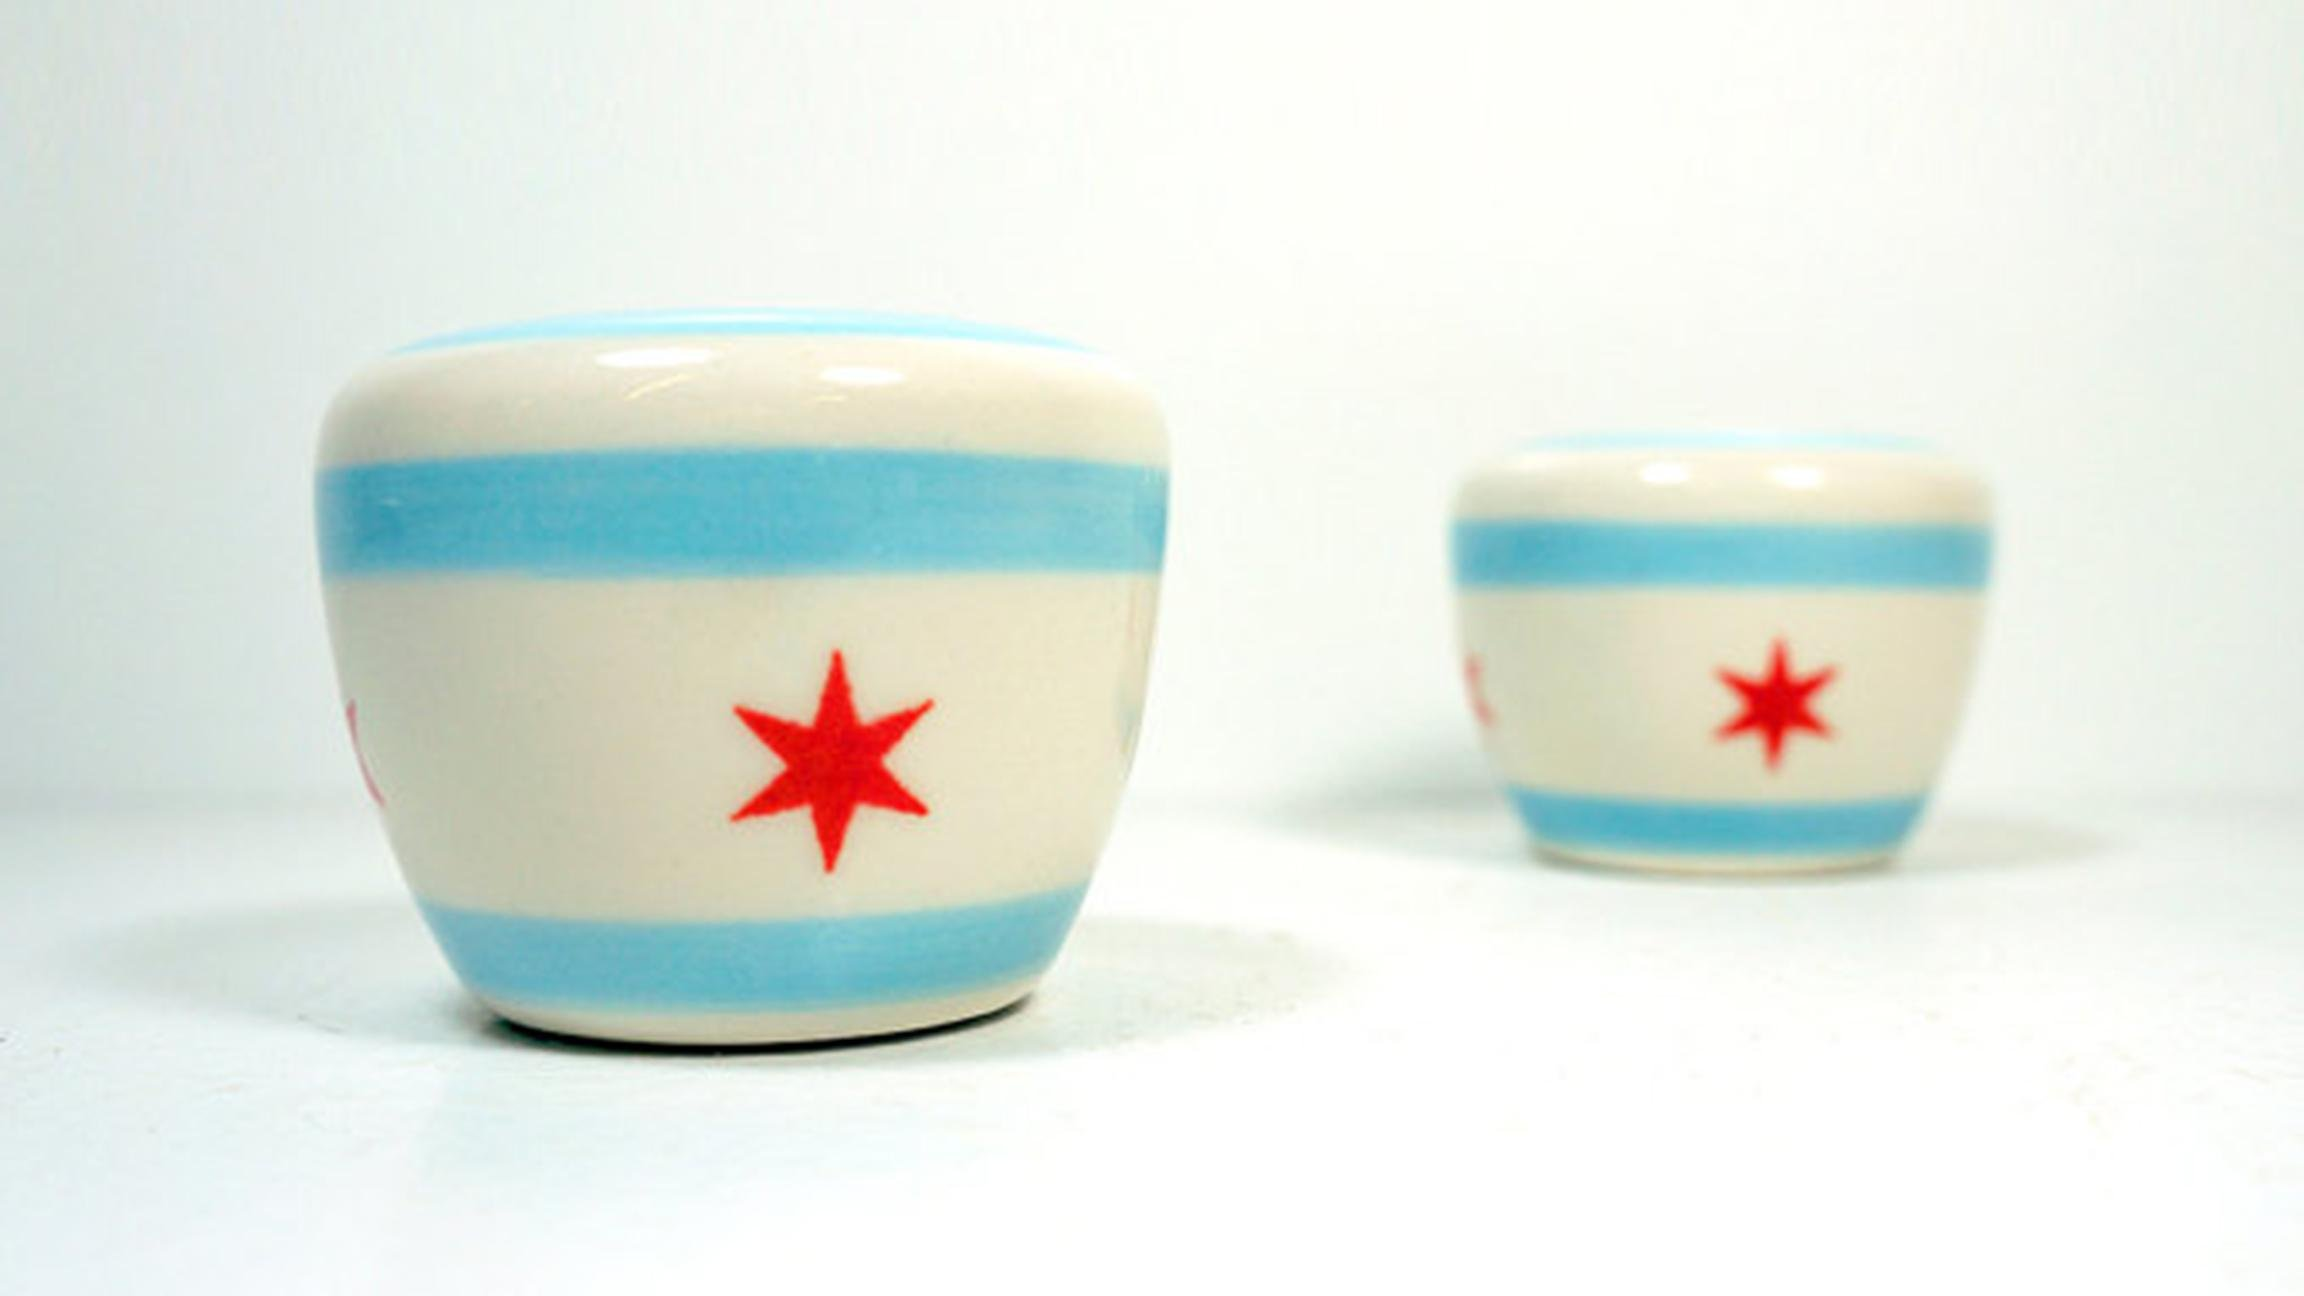 Circa Ceramics are one of the many vendors participating in this weekend's Made in Chicago Market.